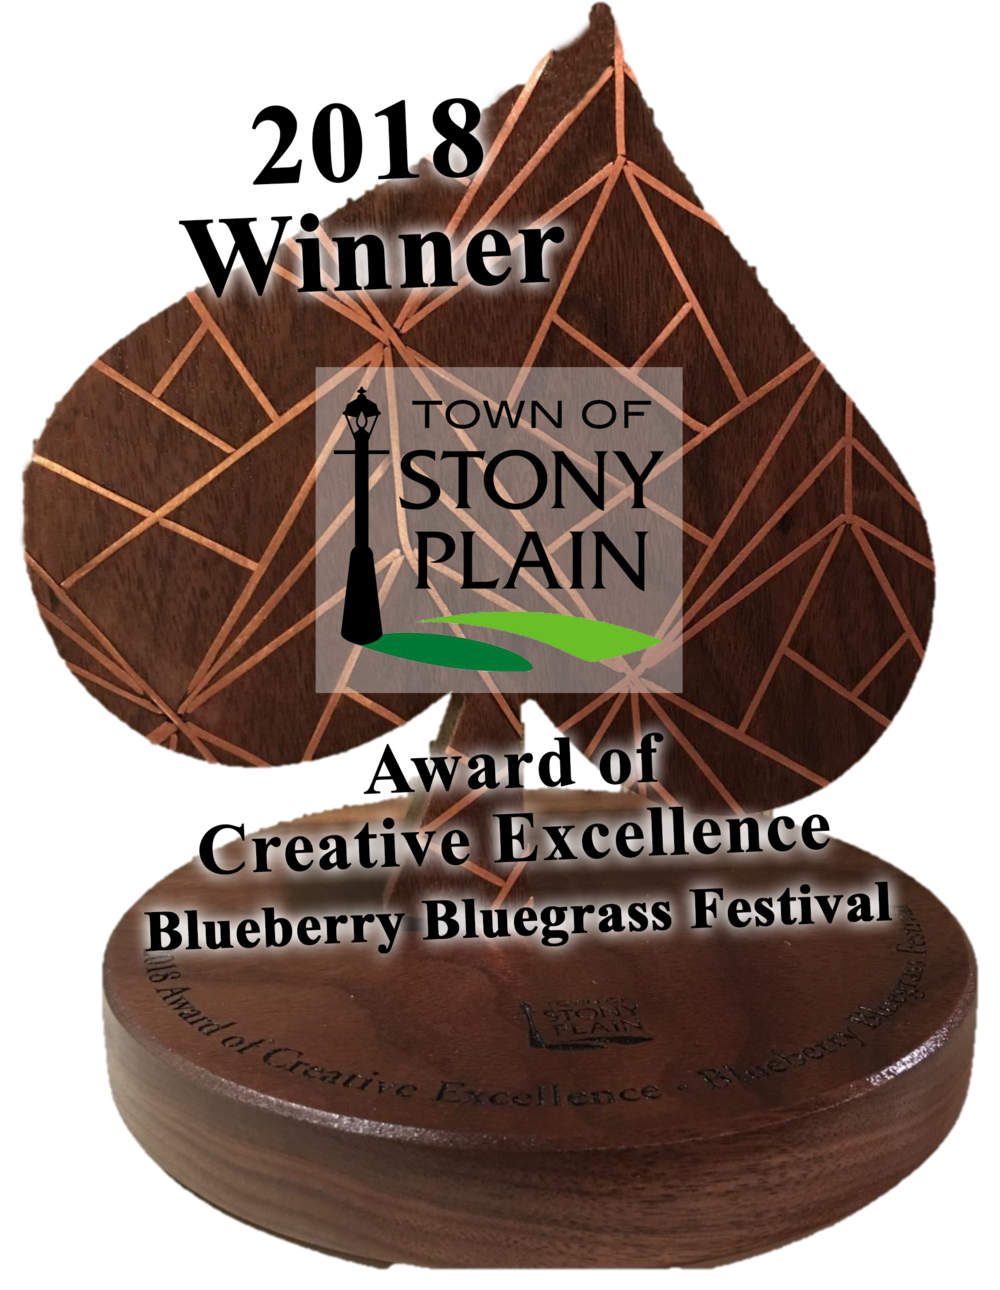 Blueberry Bluegrass Festival - 2018 Stony Plain ACE Award